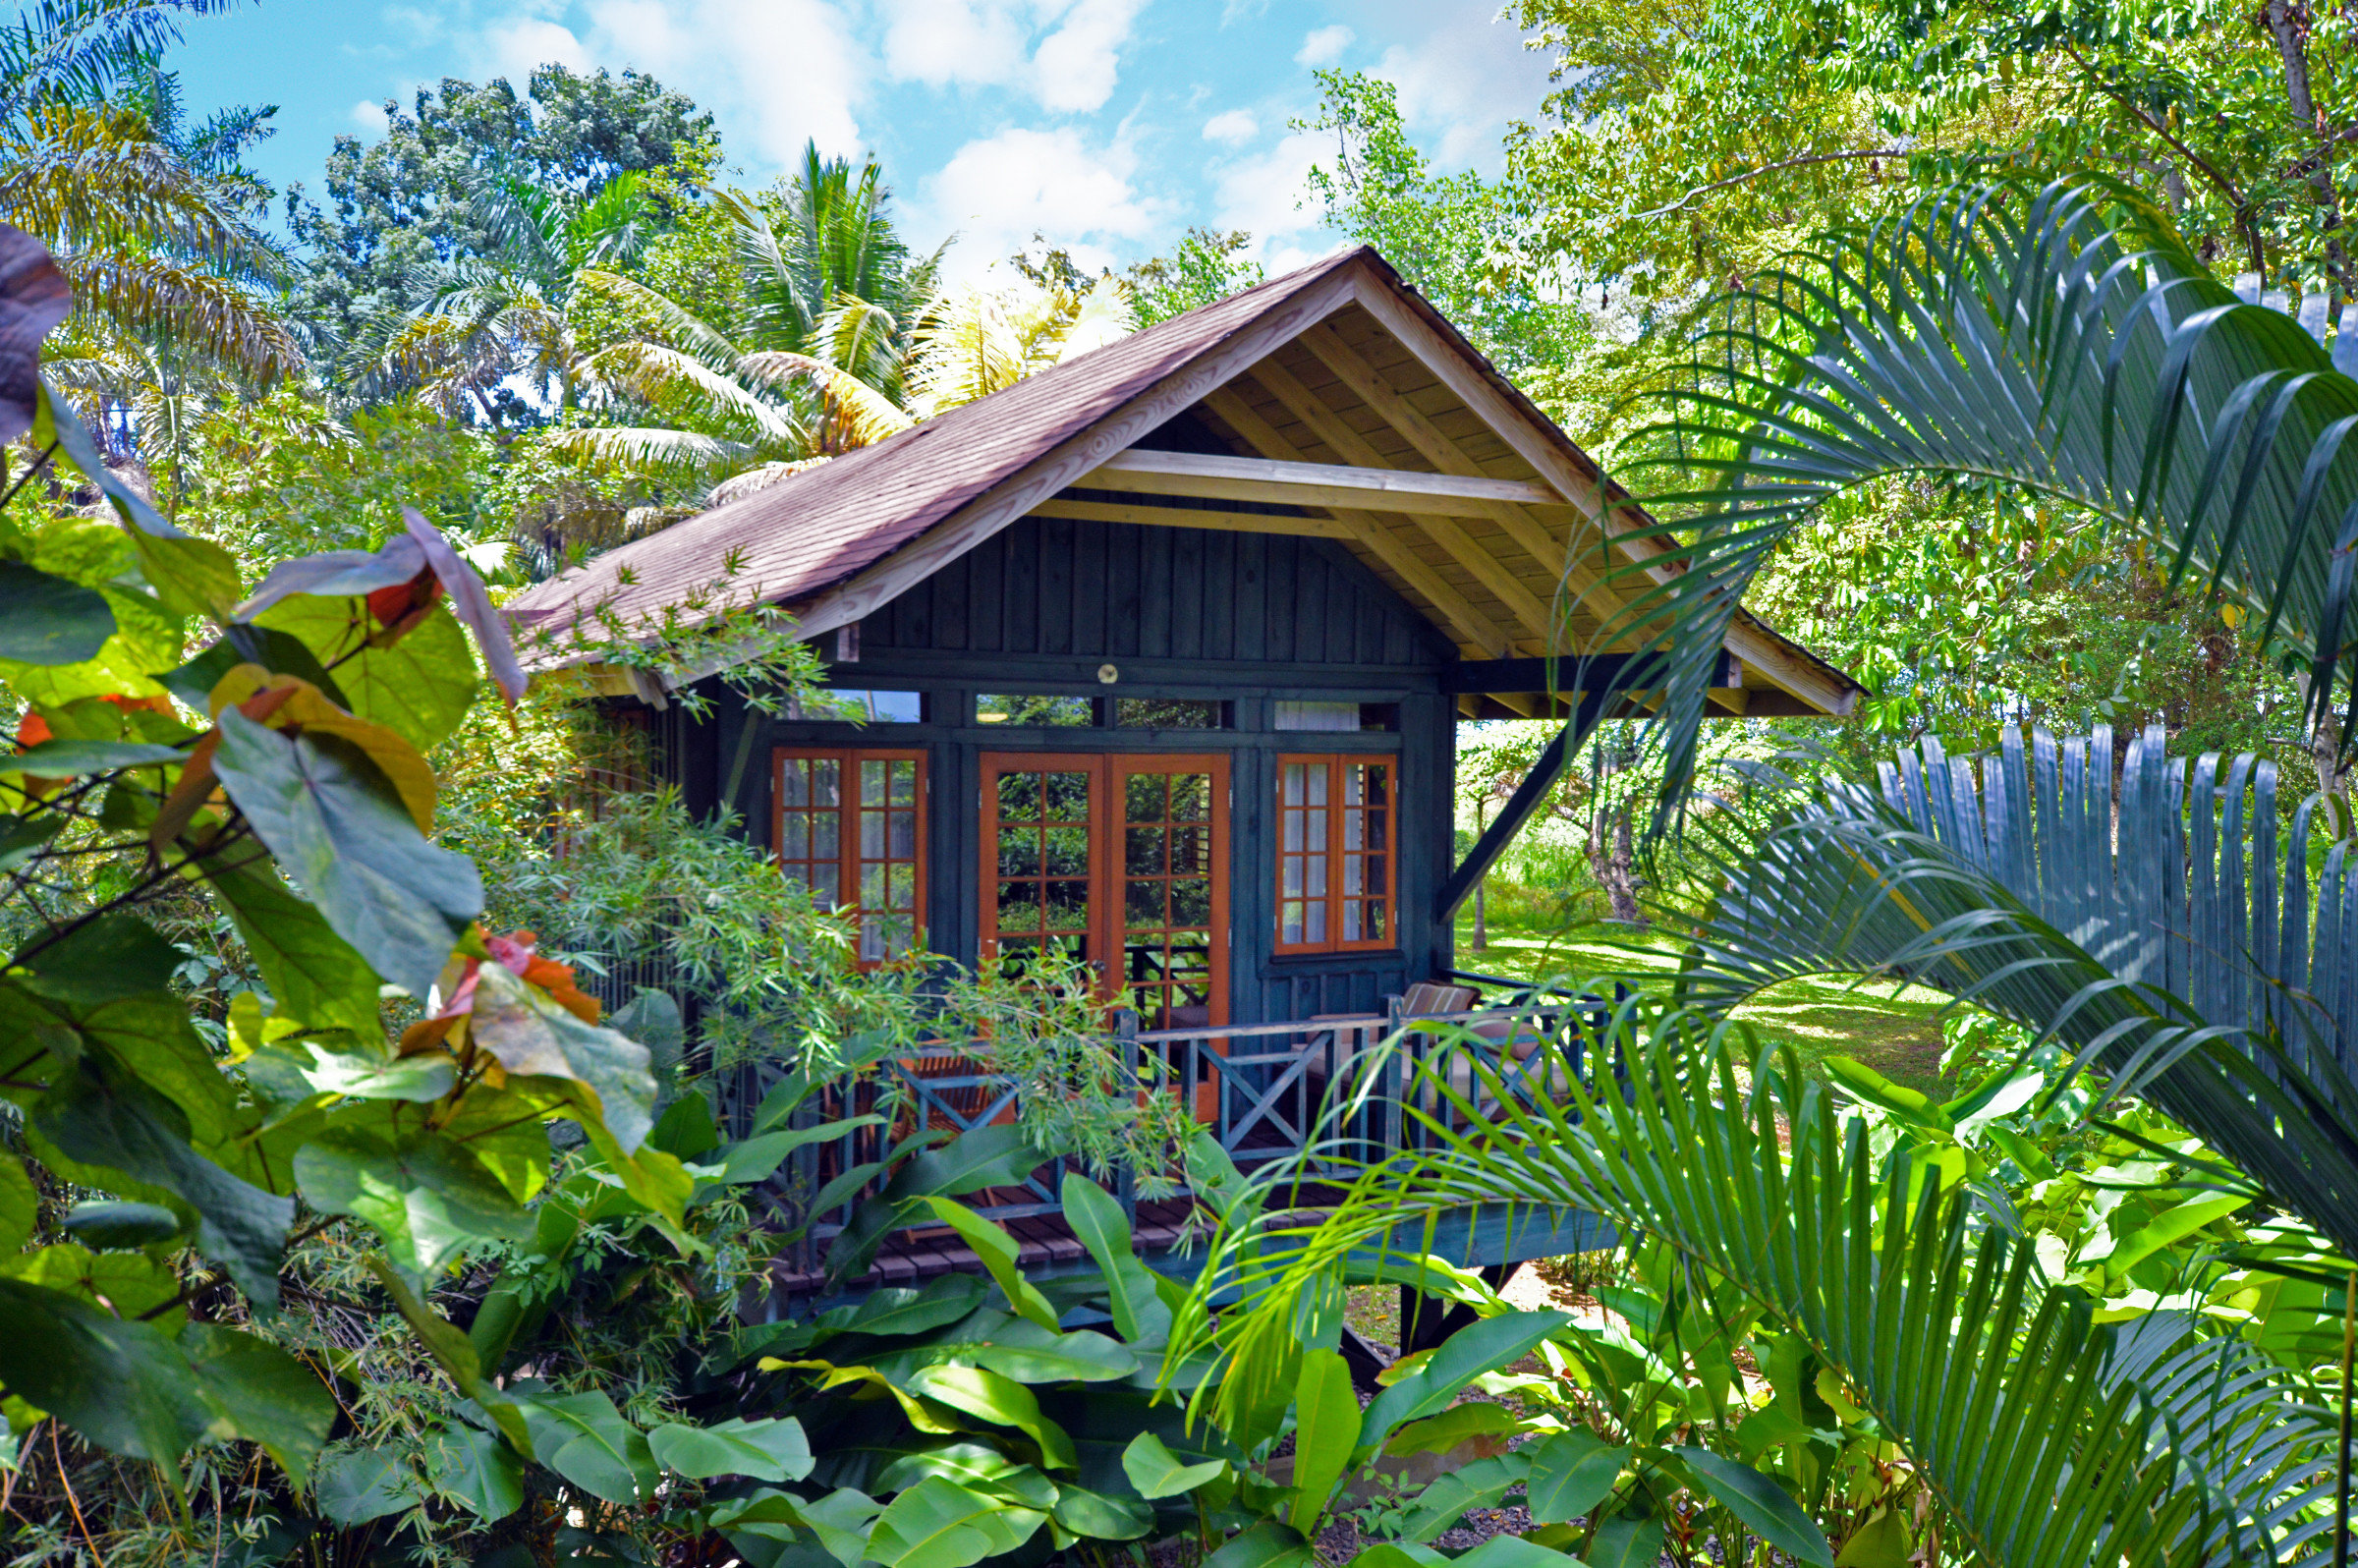 All-Inclusive Resorts caribbean Hotels tree outdoor habitat house botany Resort Garden Jungle rainforest Forest plant cottage flower tropics estate home backyard outdoor structure hut botanical garden